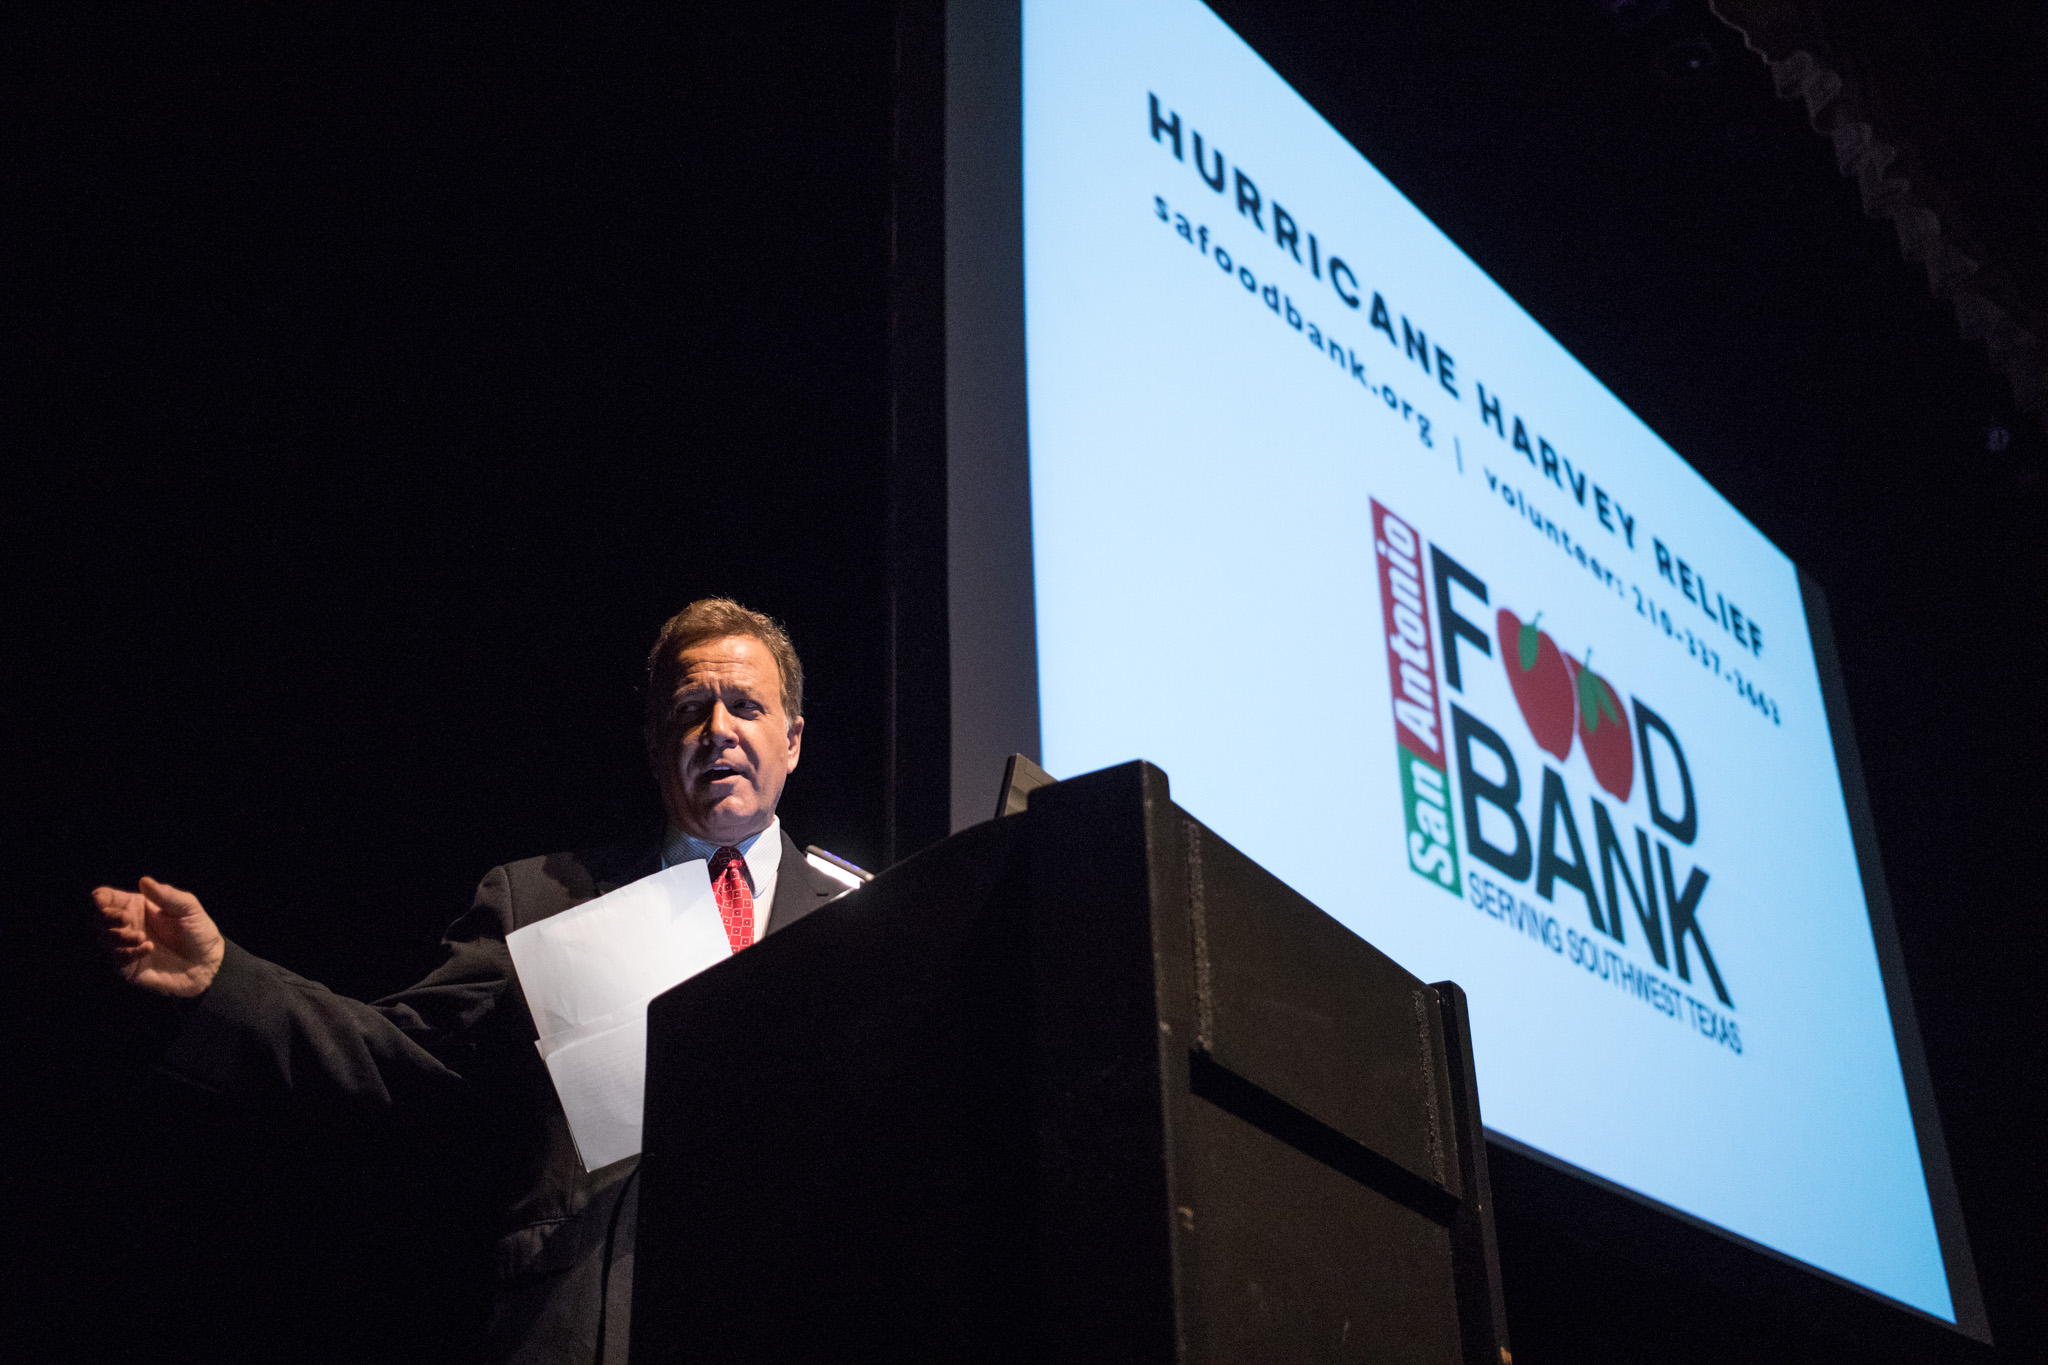 News 4 San Antonio anchor Randy Beamer announces that the proceeds made PechaKucha Vol. 27 will be donated to the San Antonio Food Bank for Hurricane Harvey relief.